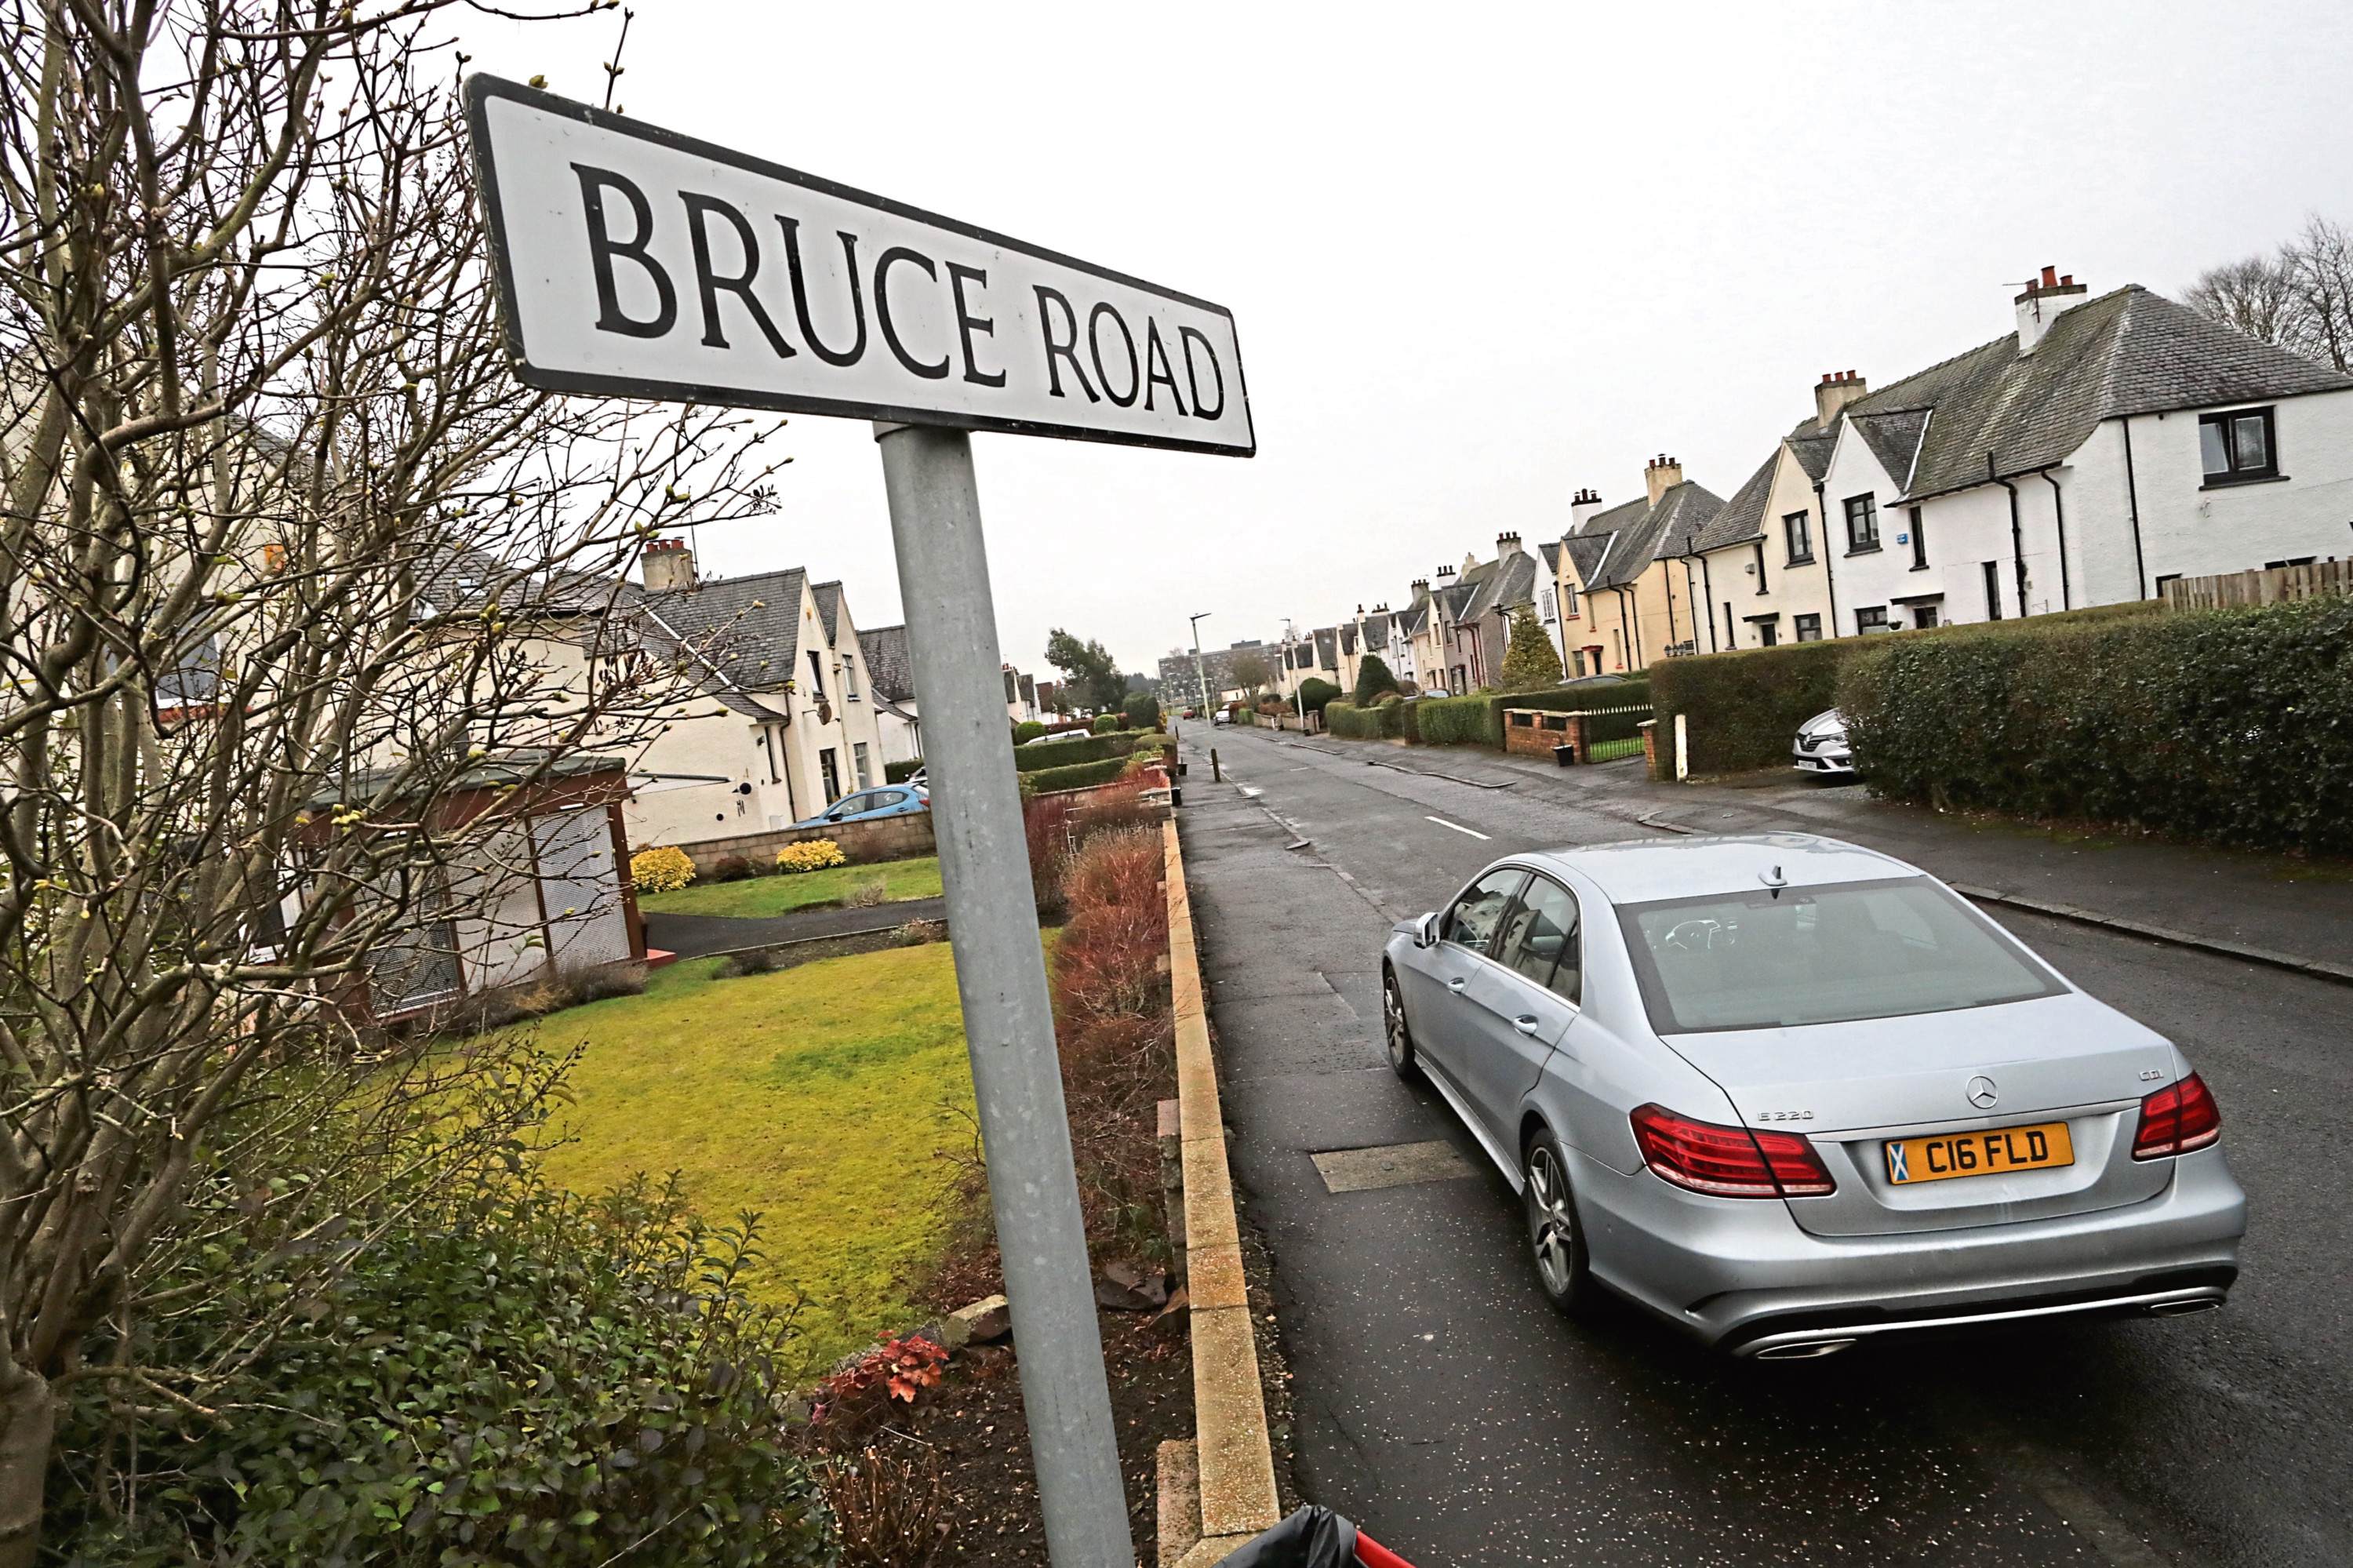 The break-ins took place in the city's Bruce Road